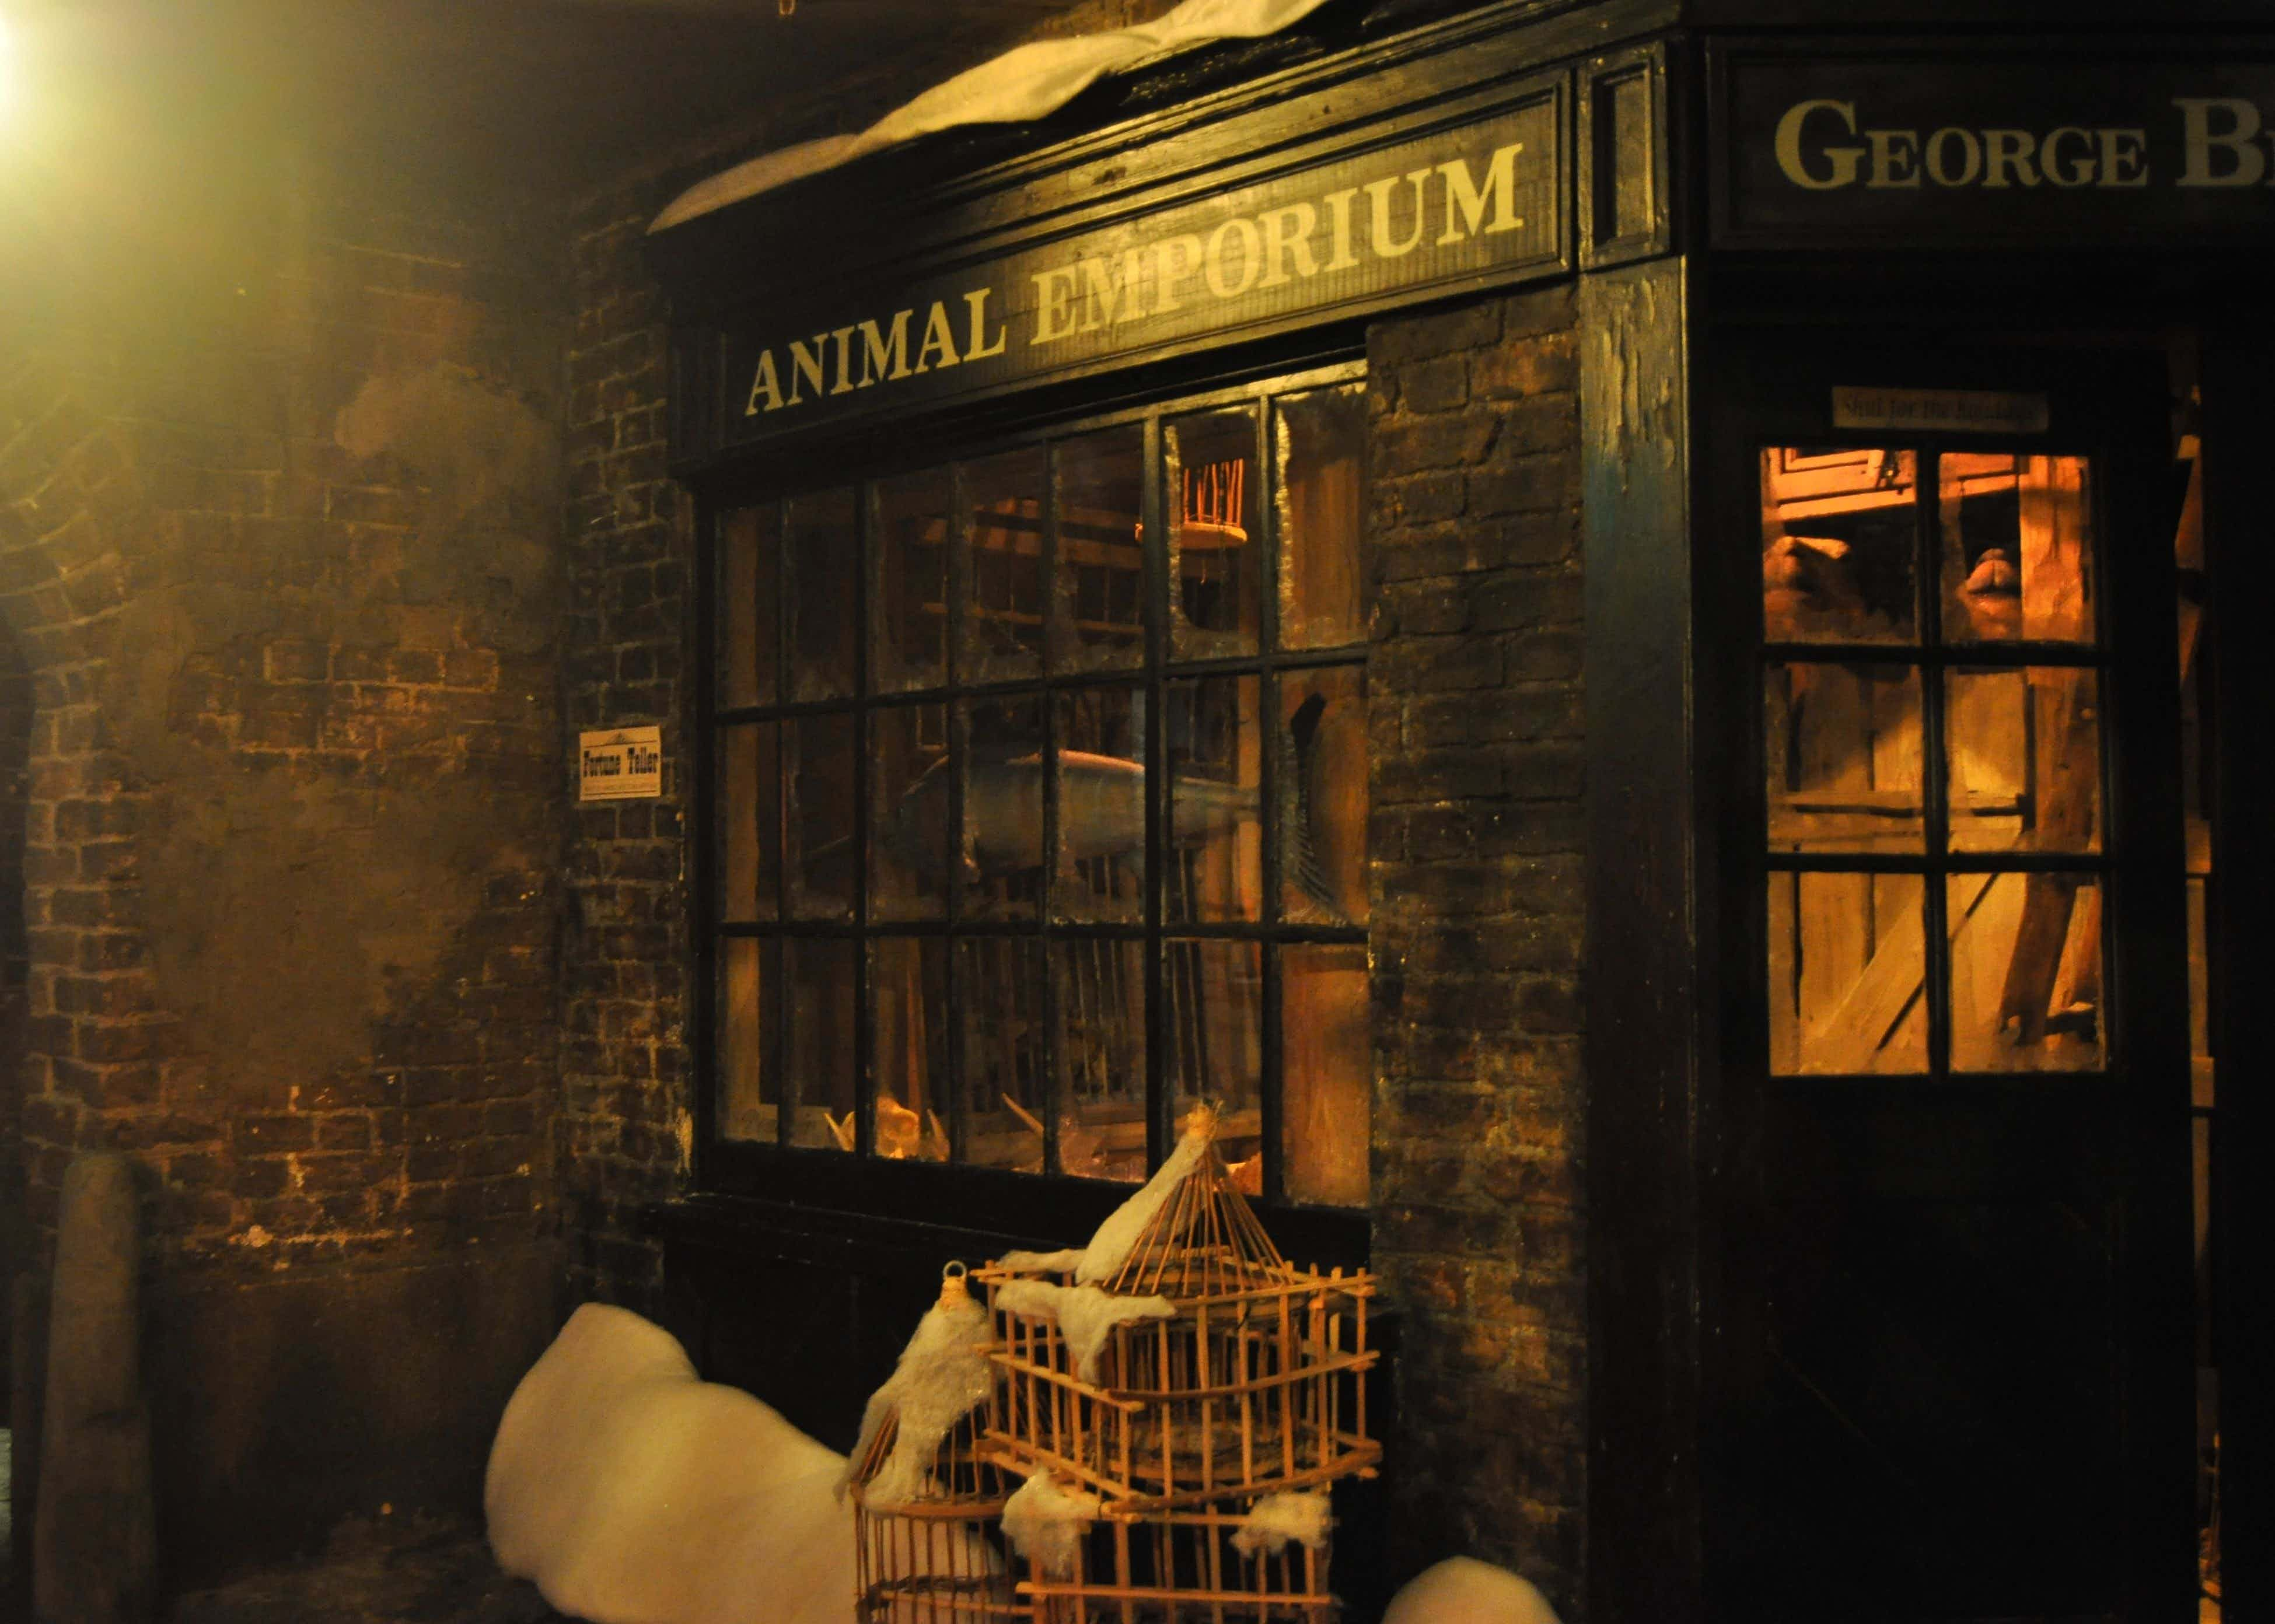 Sailortown & City & River Gallery, Museum of London Docklands